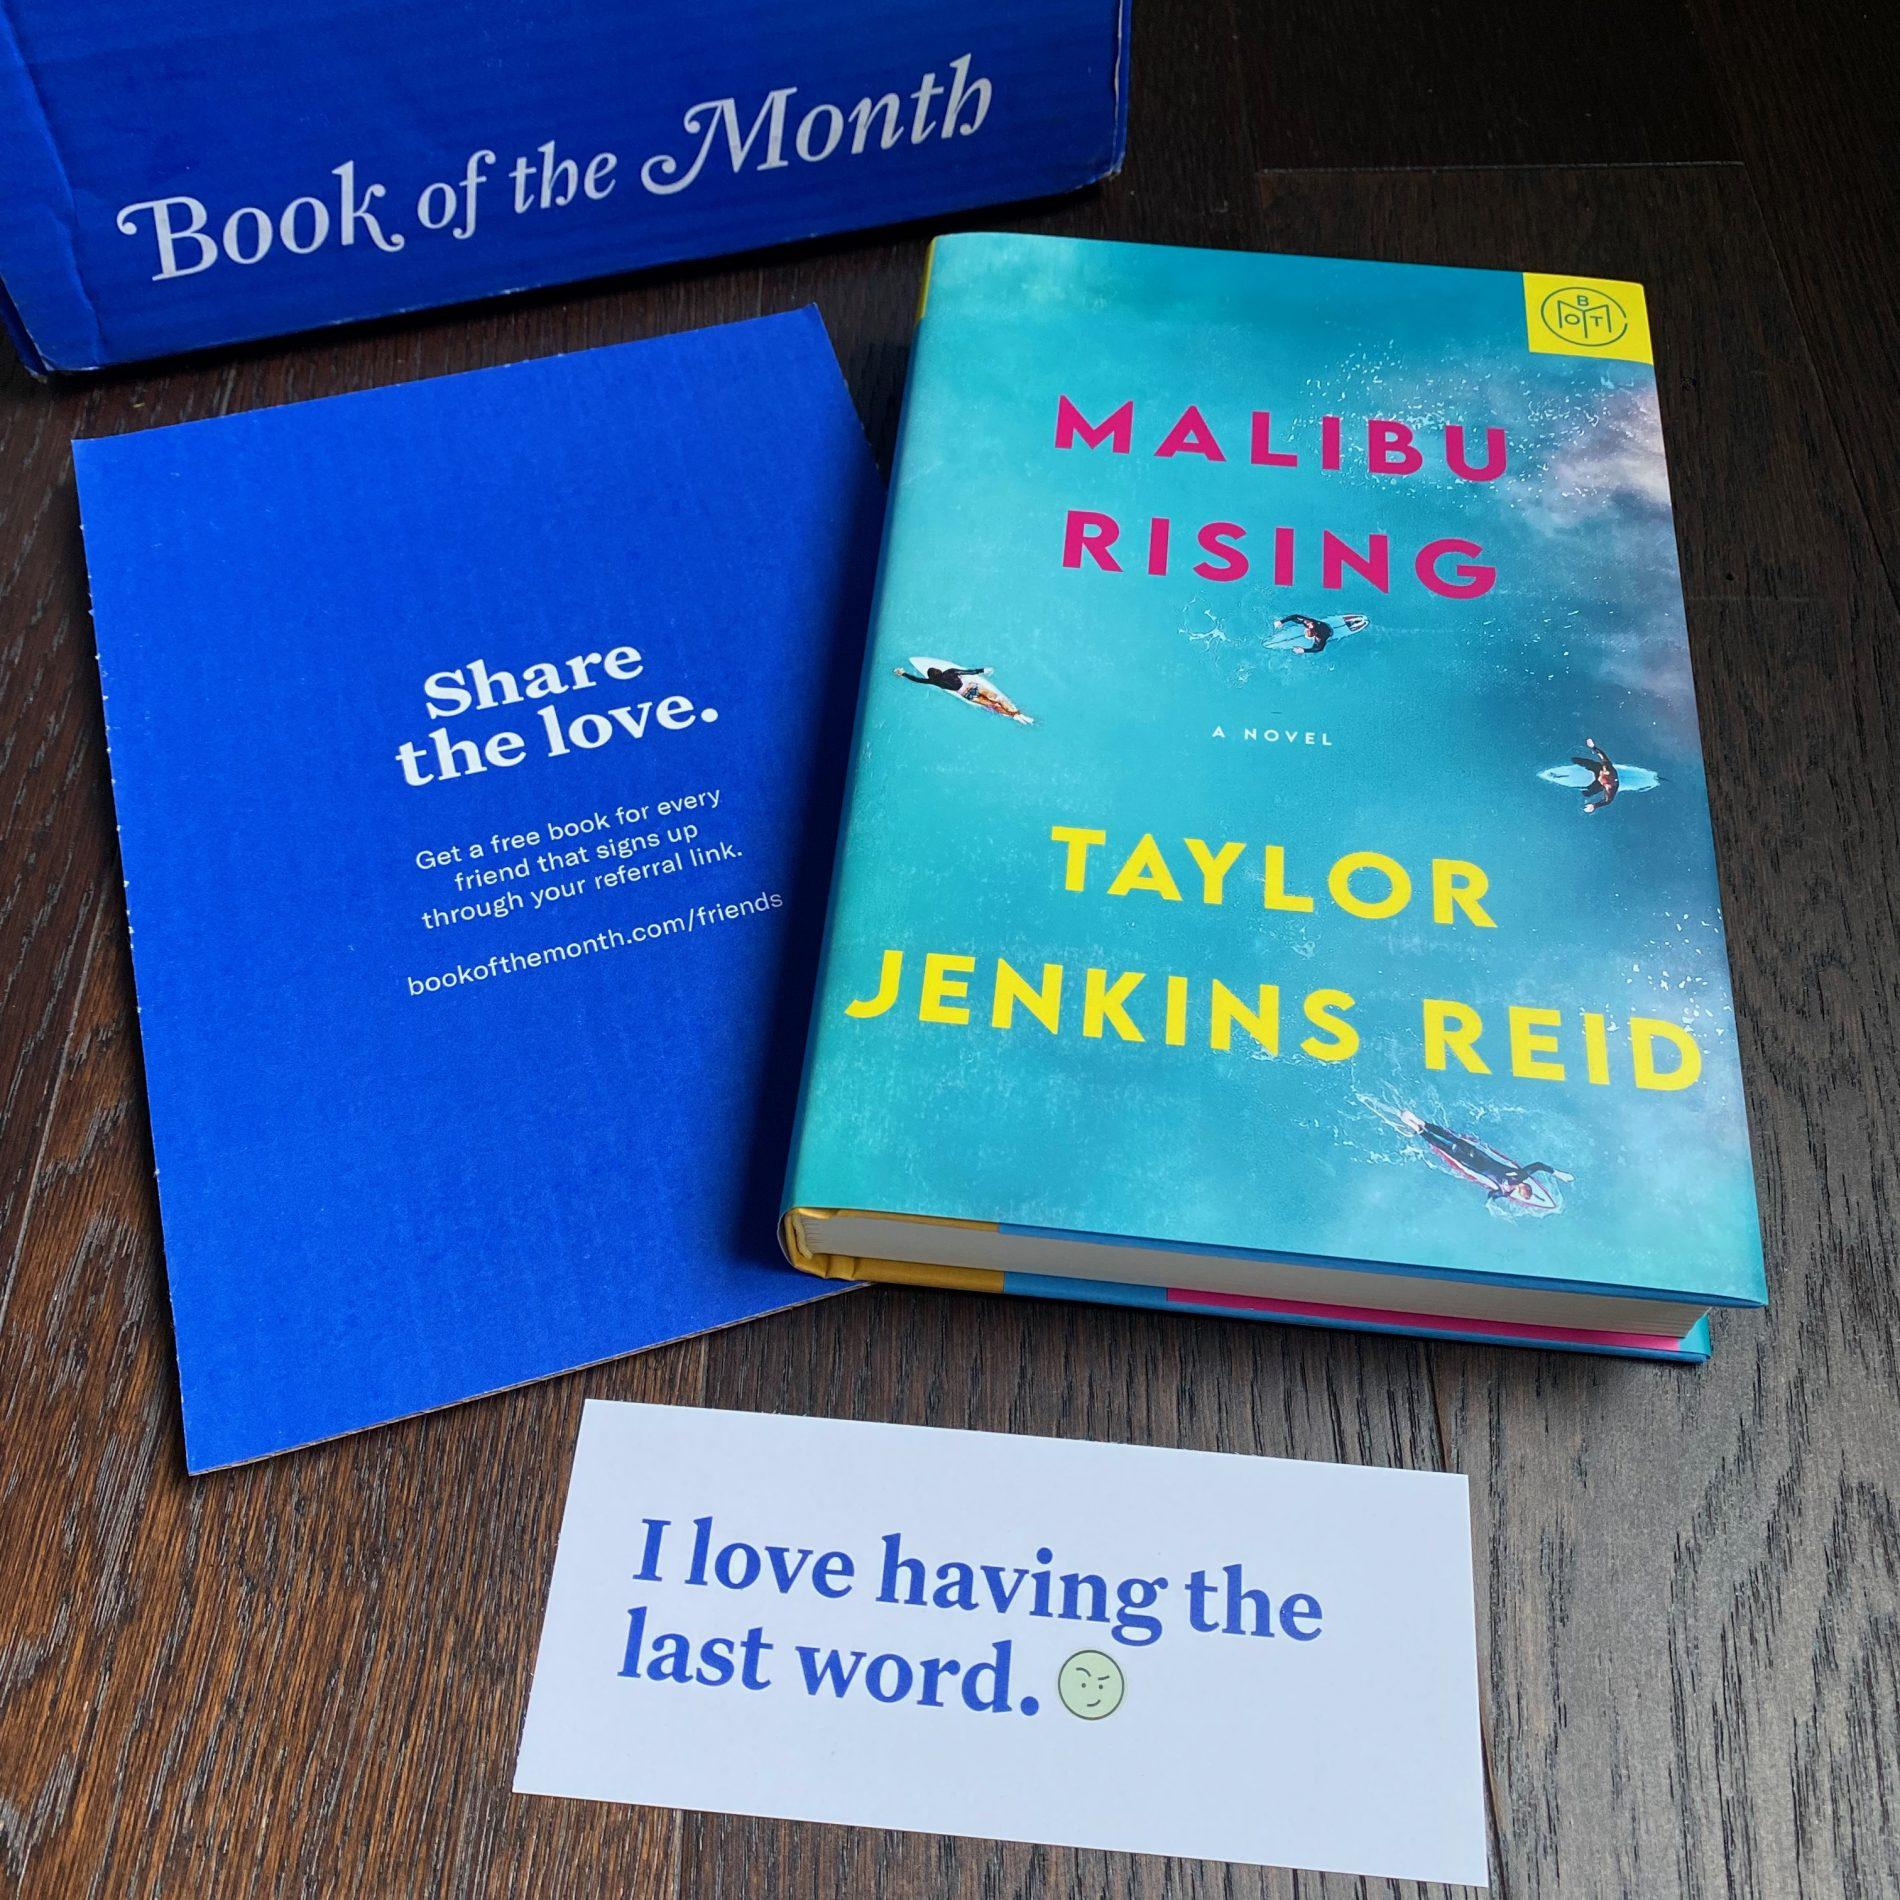 Book of the Month Review + Coupon Code – June 2021